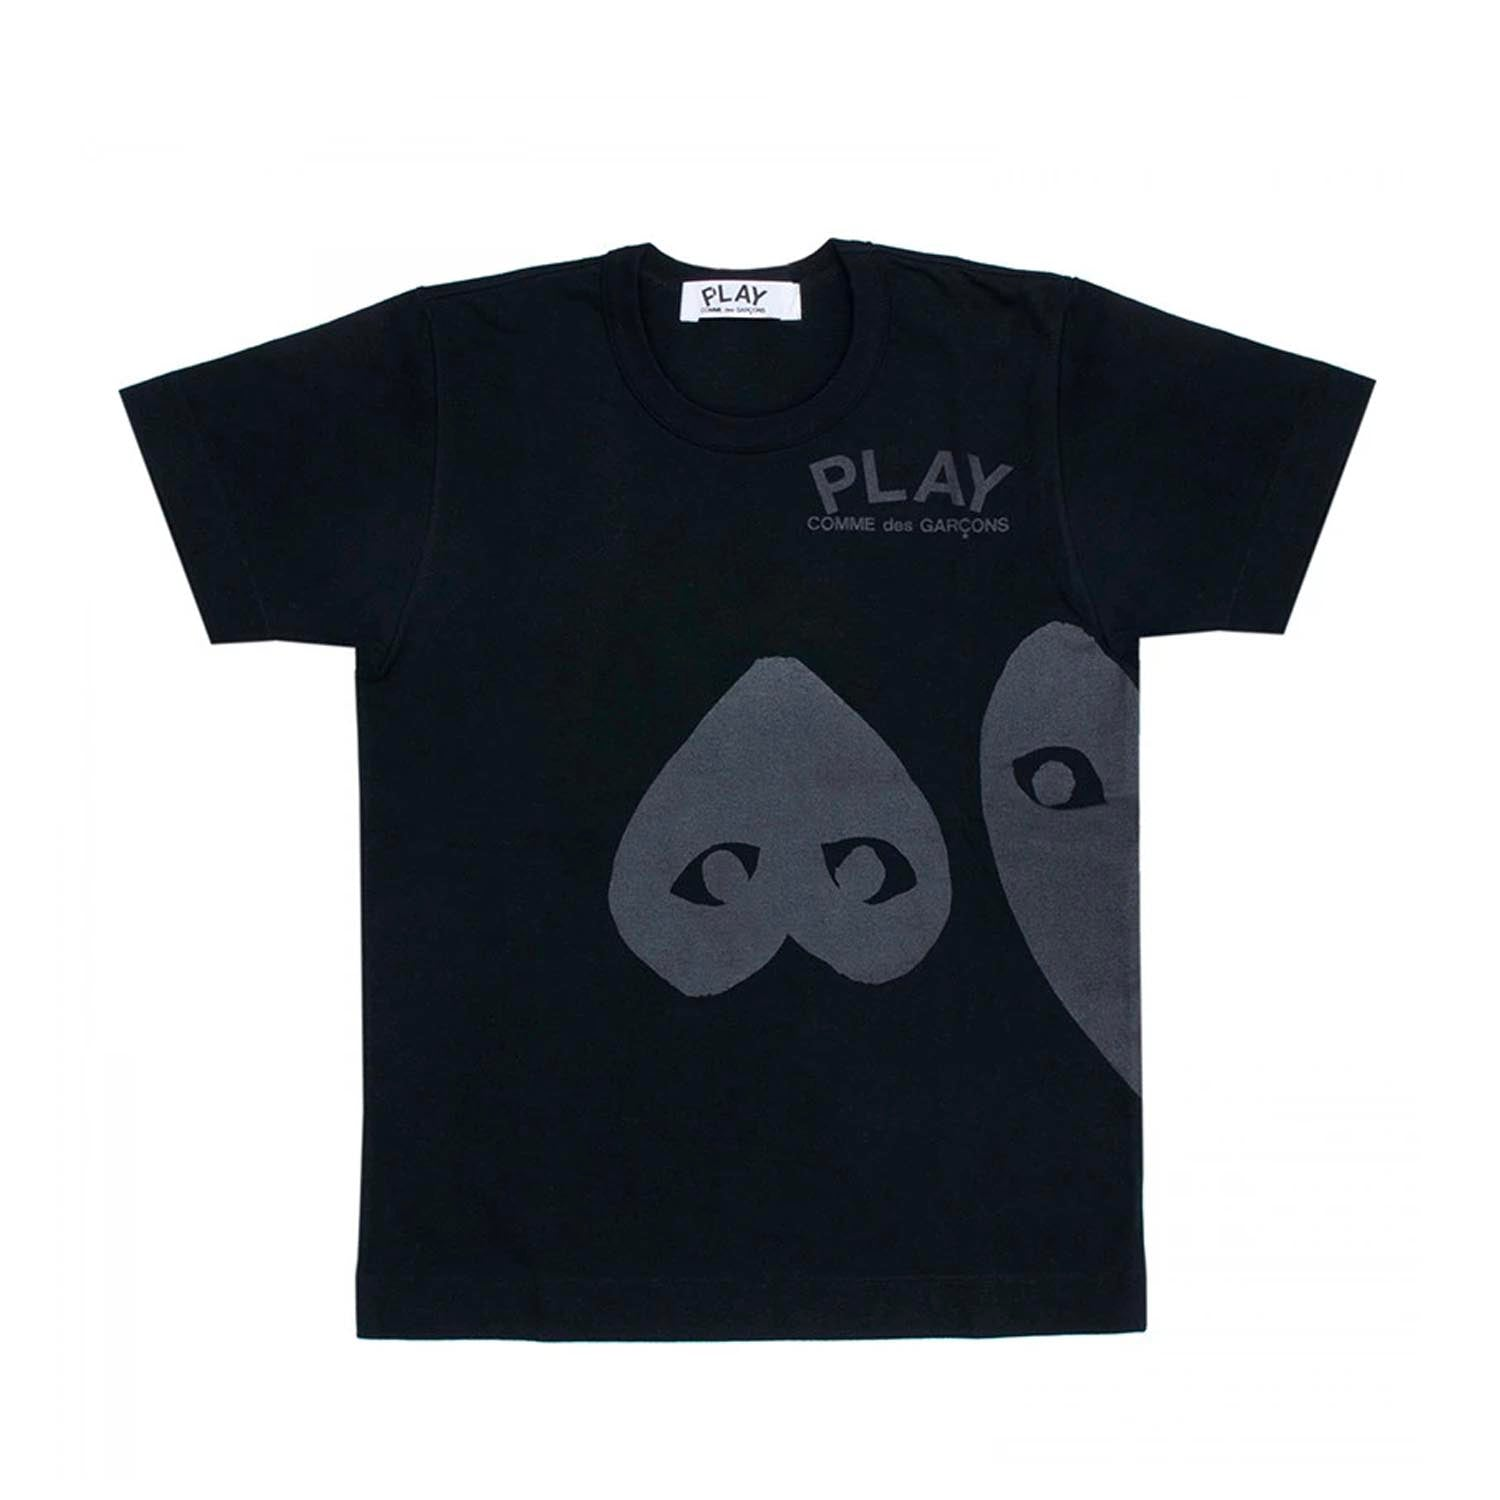 PLAY Triple Heart T-Shirt